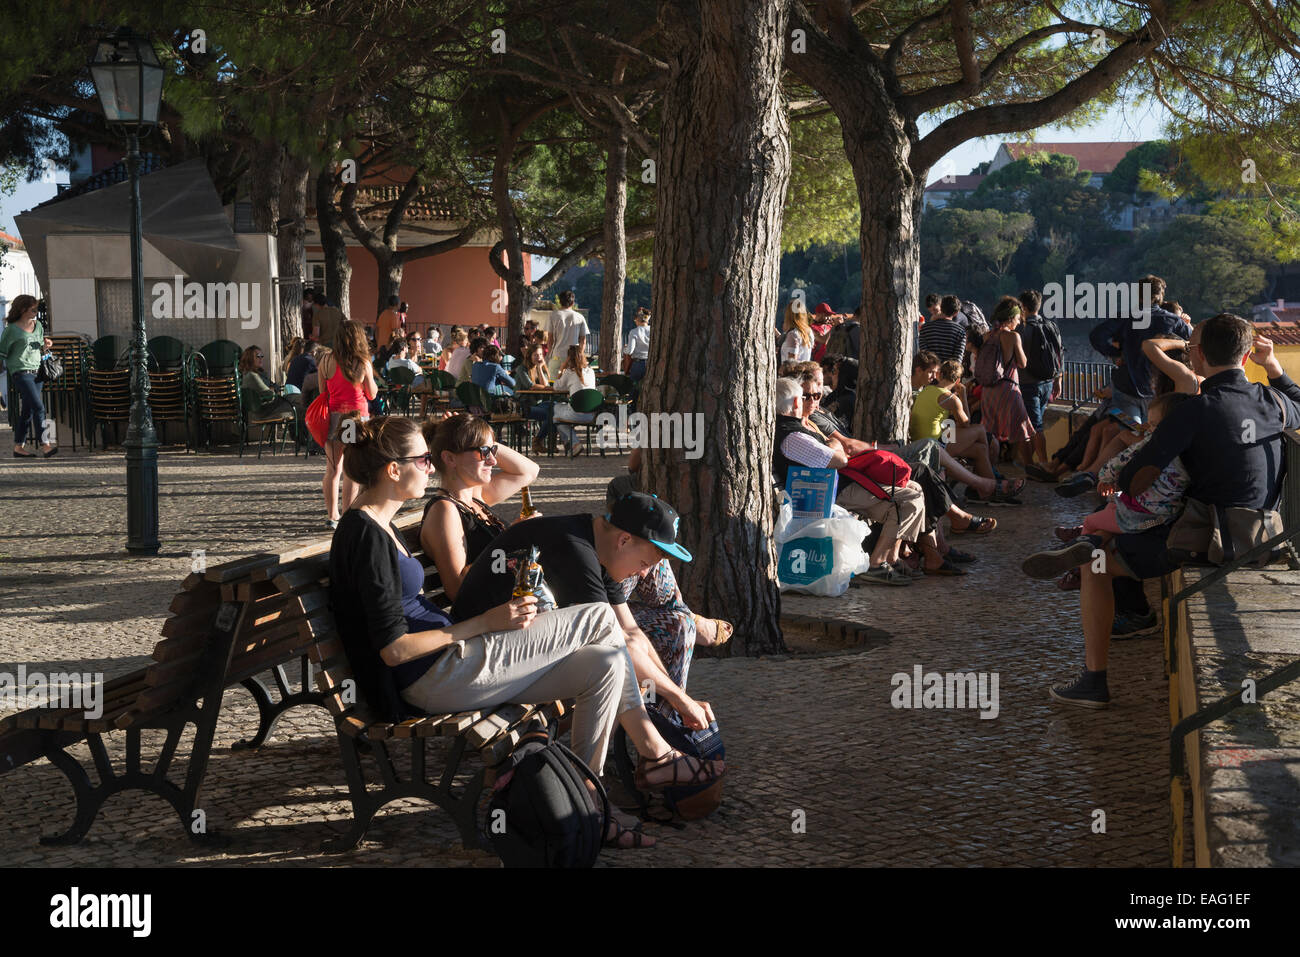 People at Graca Viewpoint, Lisbon, Portugal - Stock Image